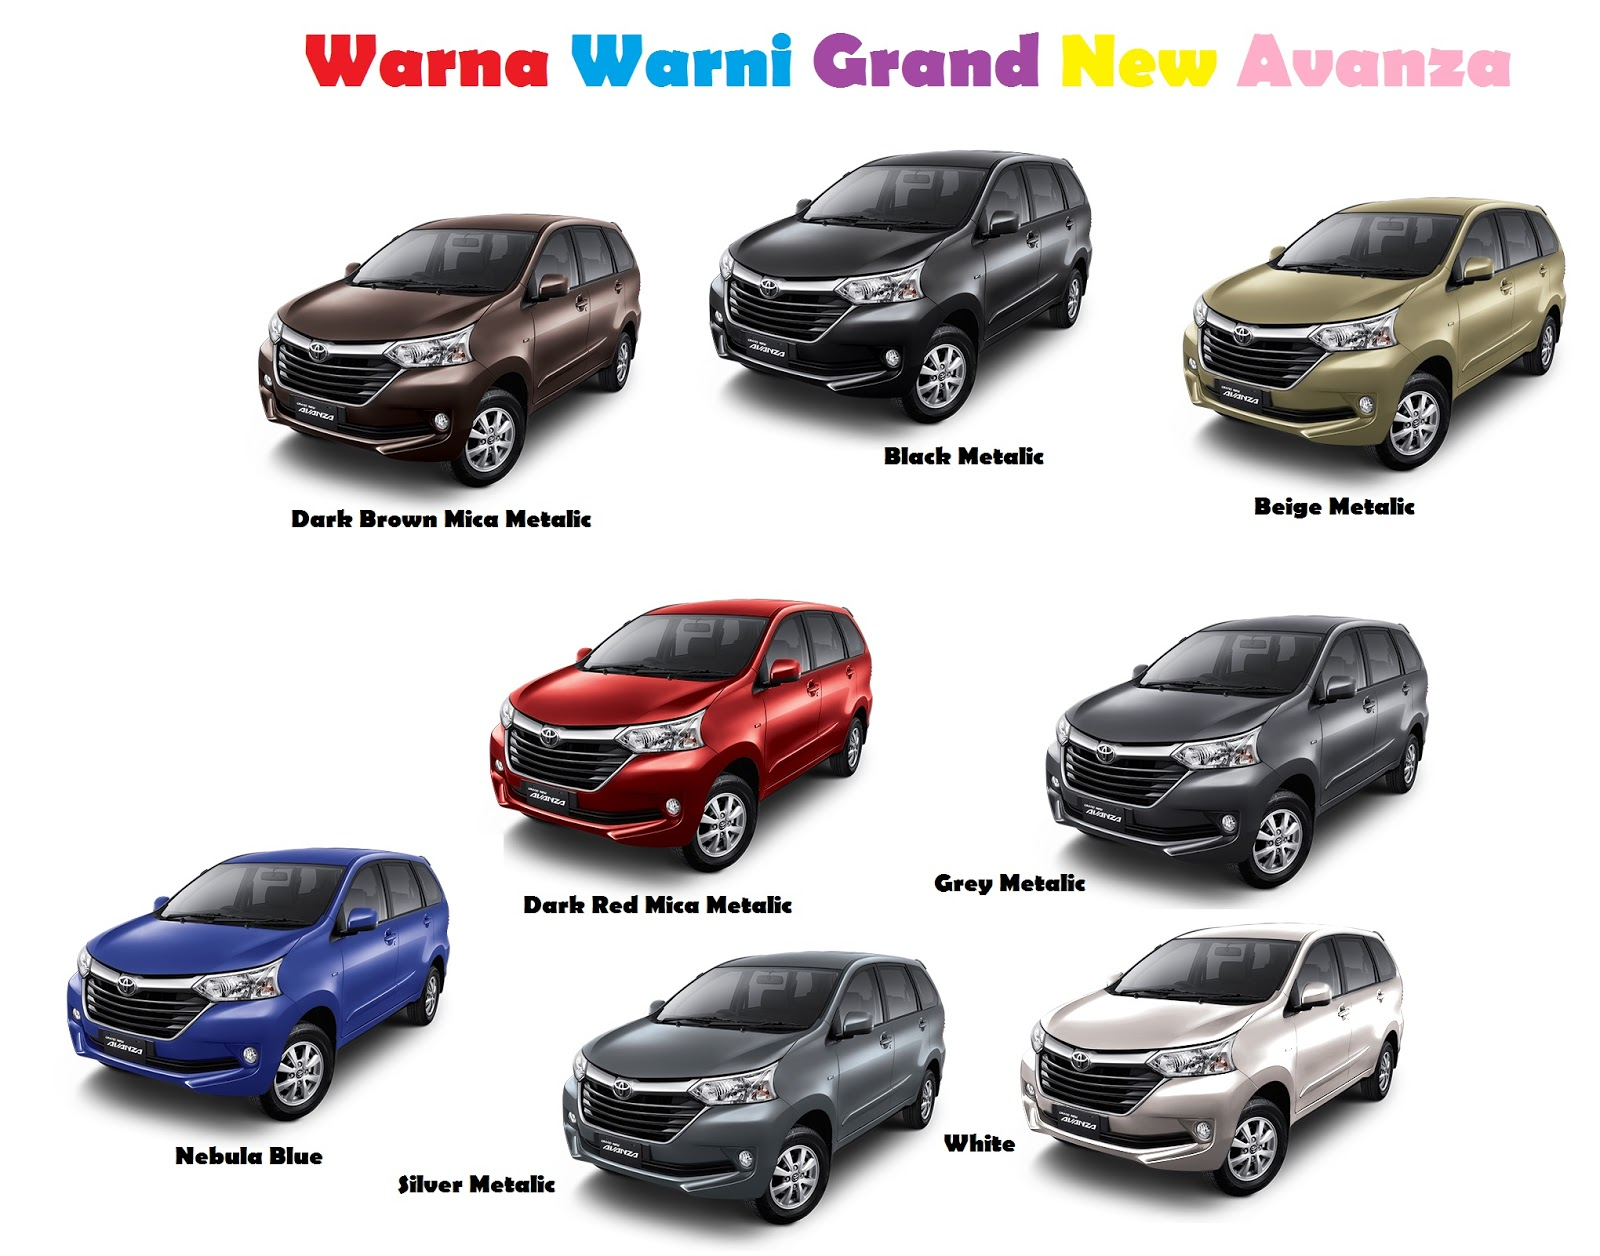 grand new avanza warna grey metallic toyota all vellfire 2.5 zg edition dan veloz mendaki kemuning